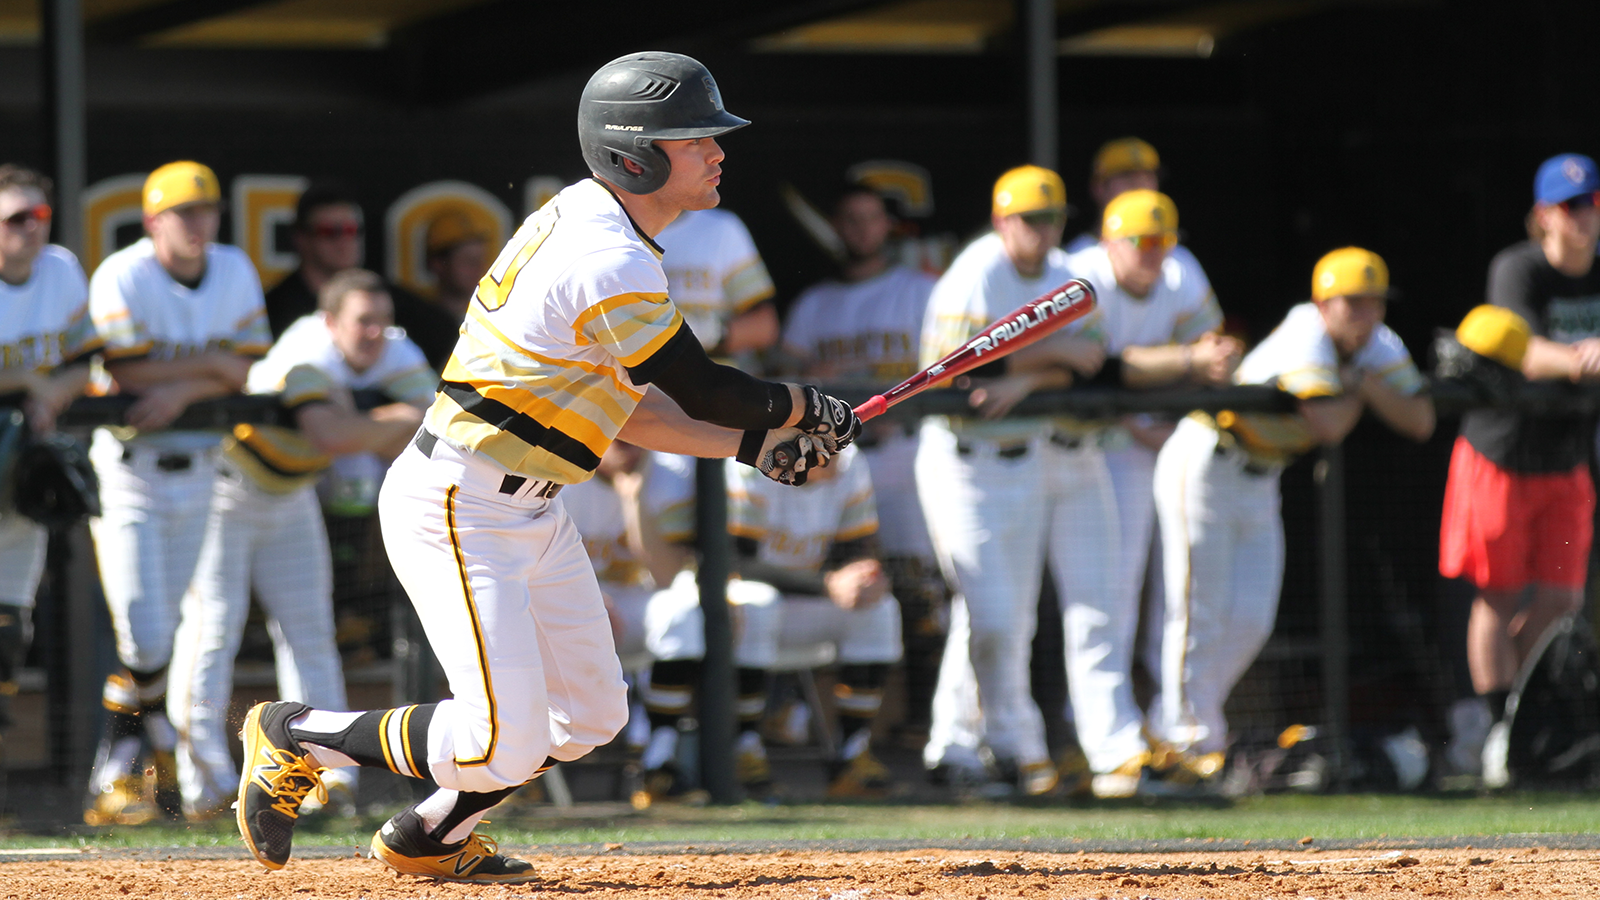 Unearned runs cost Southwestern in weekend opener